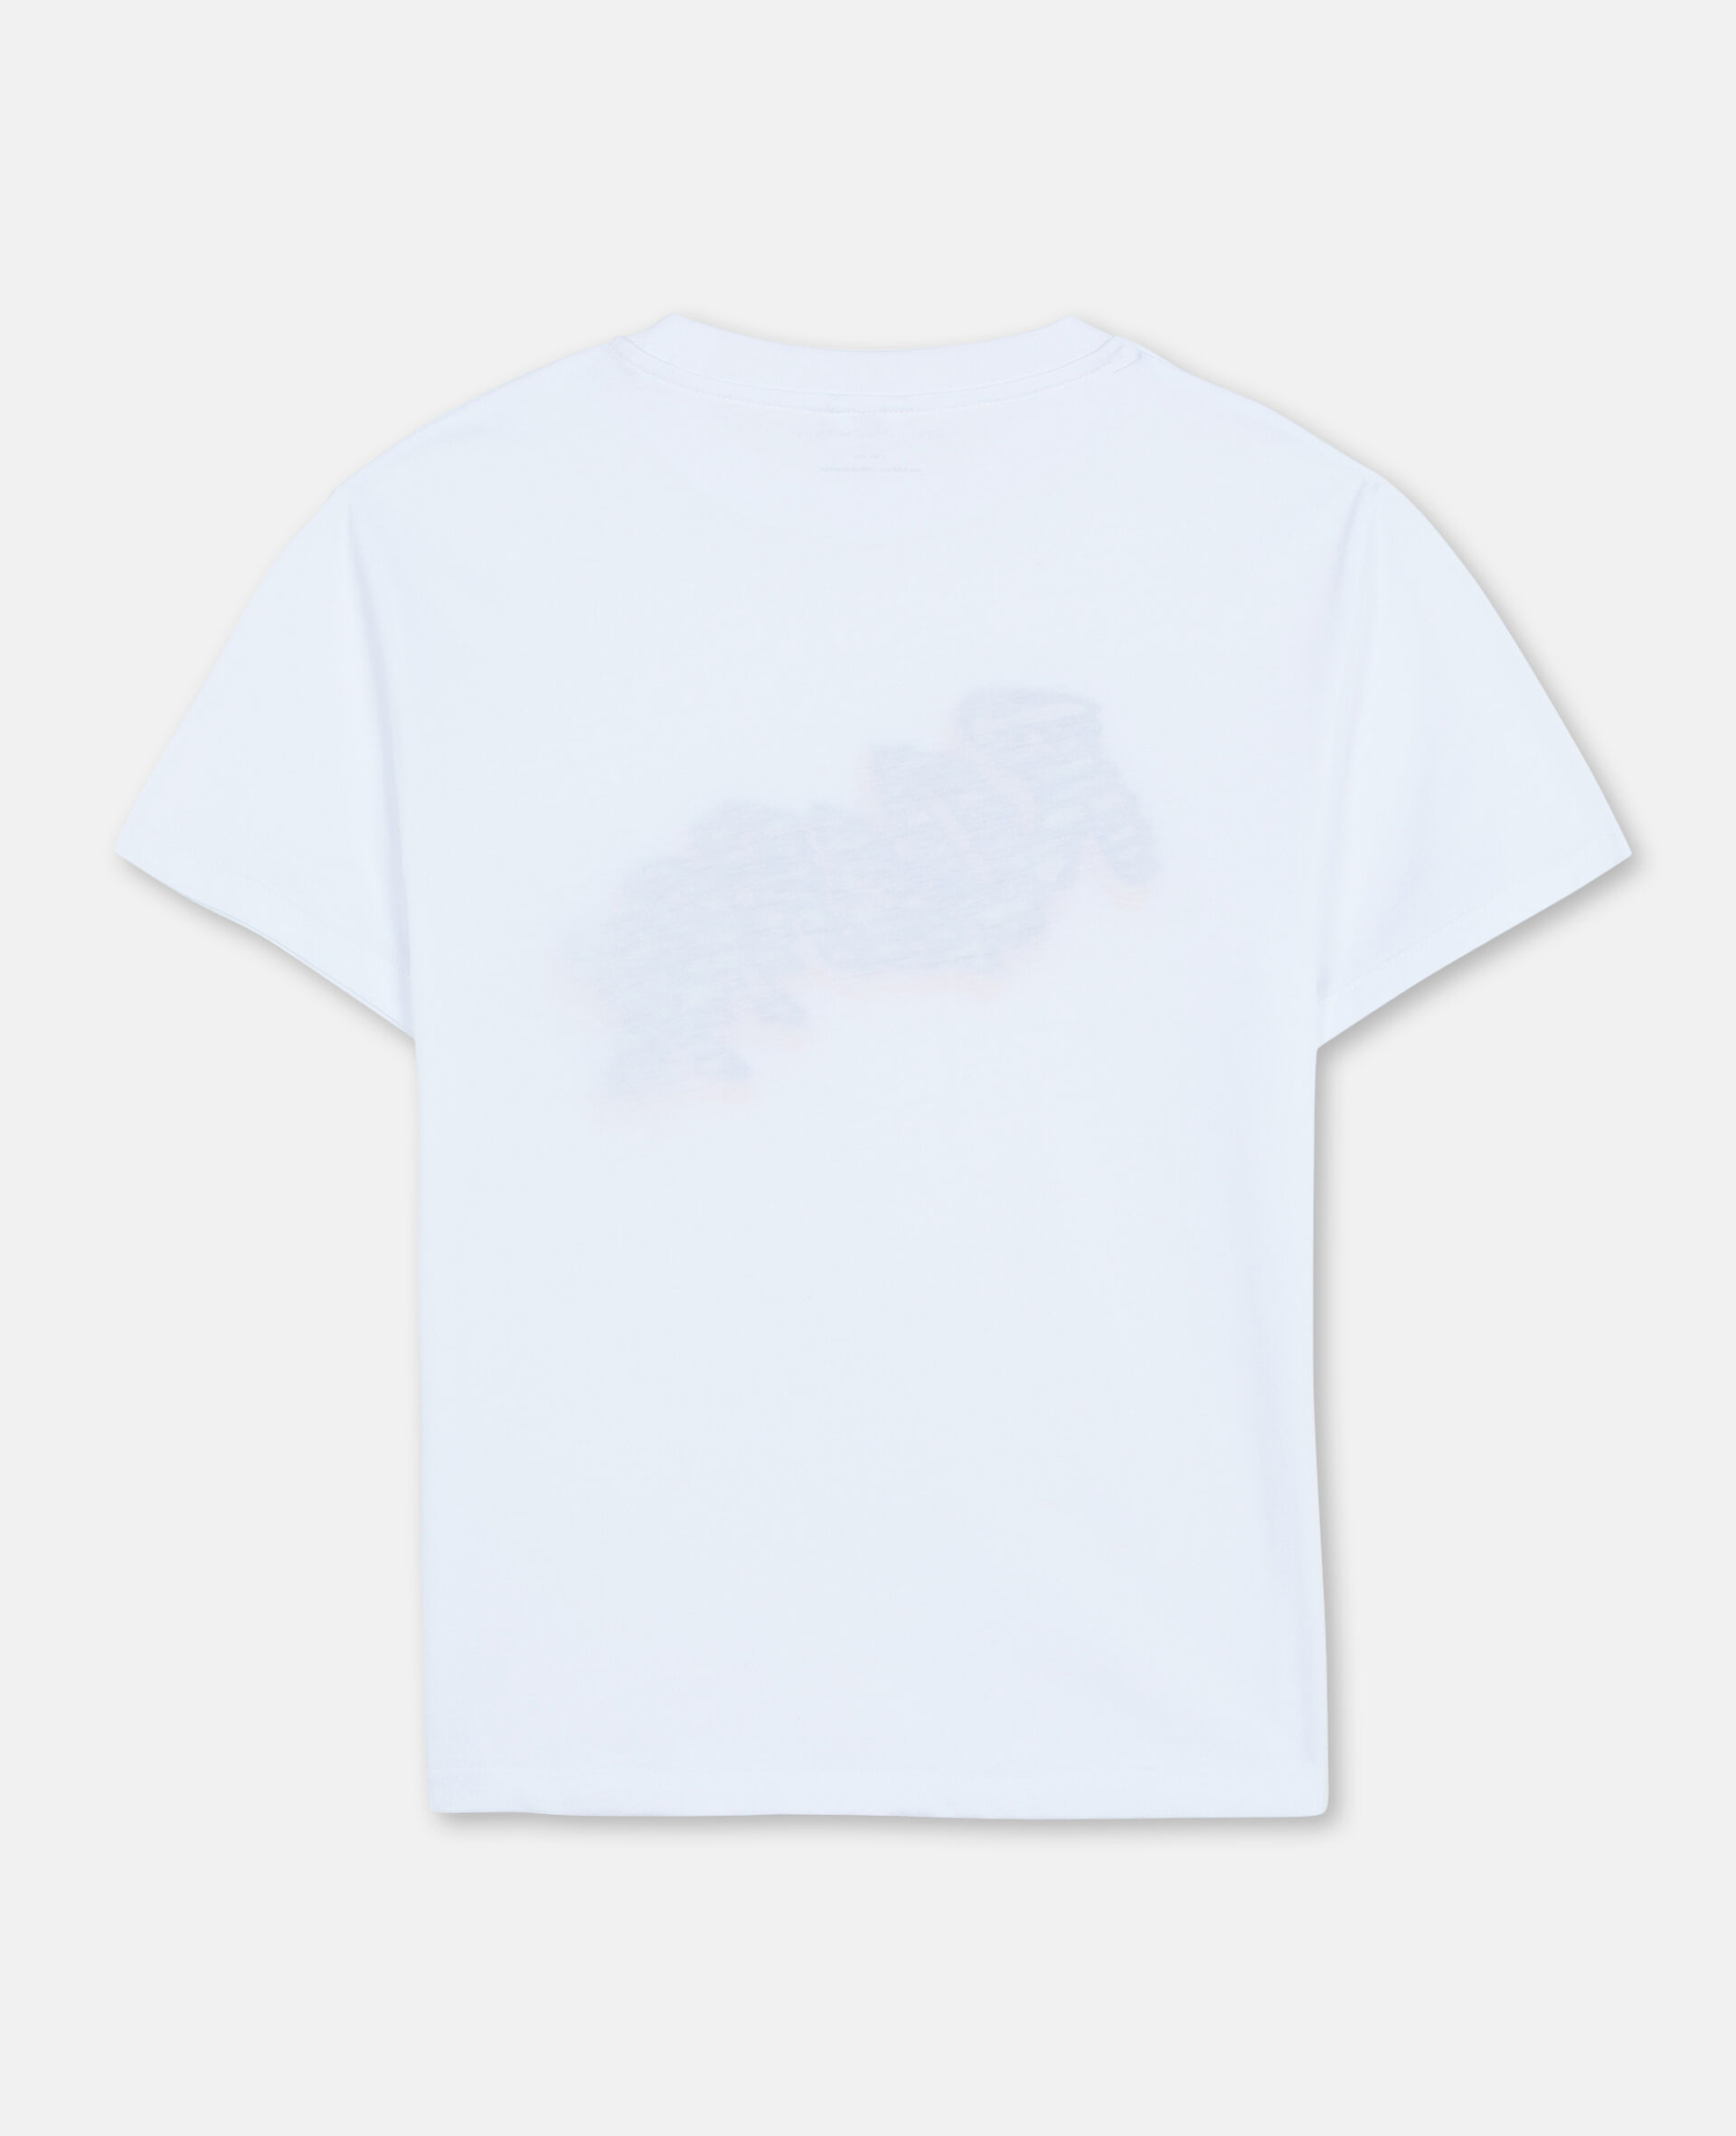 Oversize Roarrr Cotton T-shirt -White-large image number 3